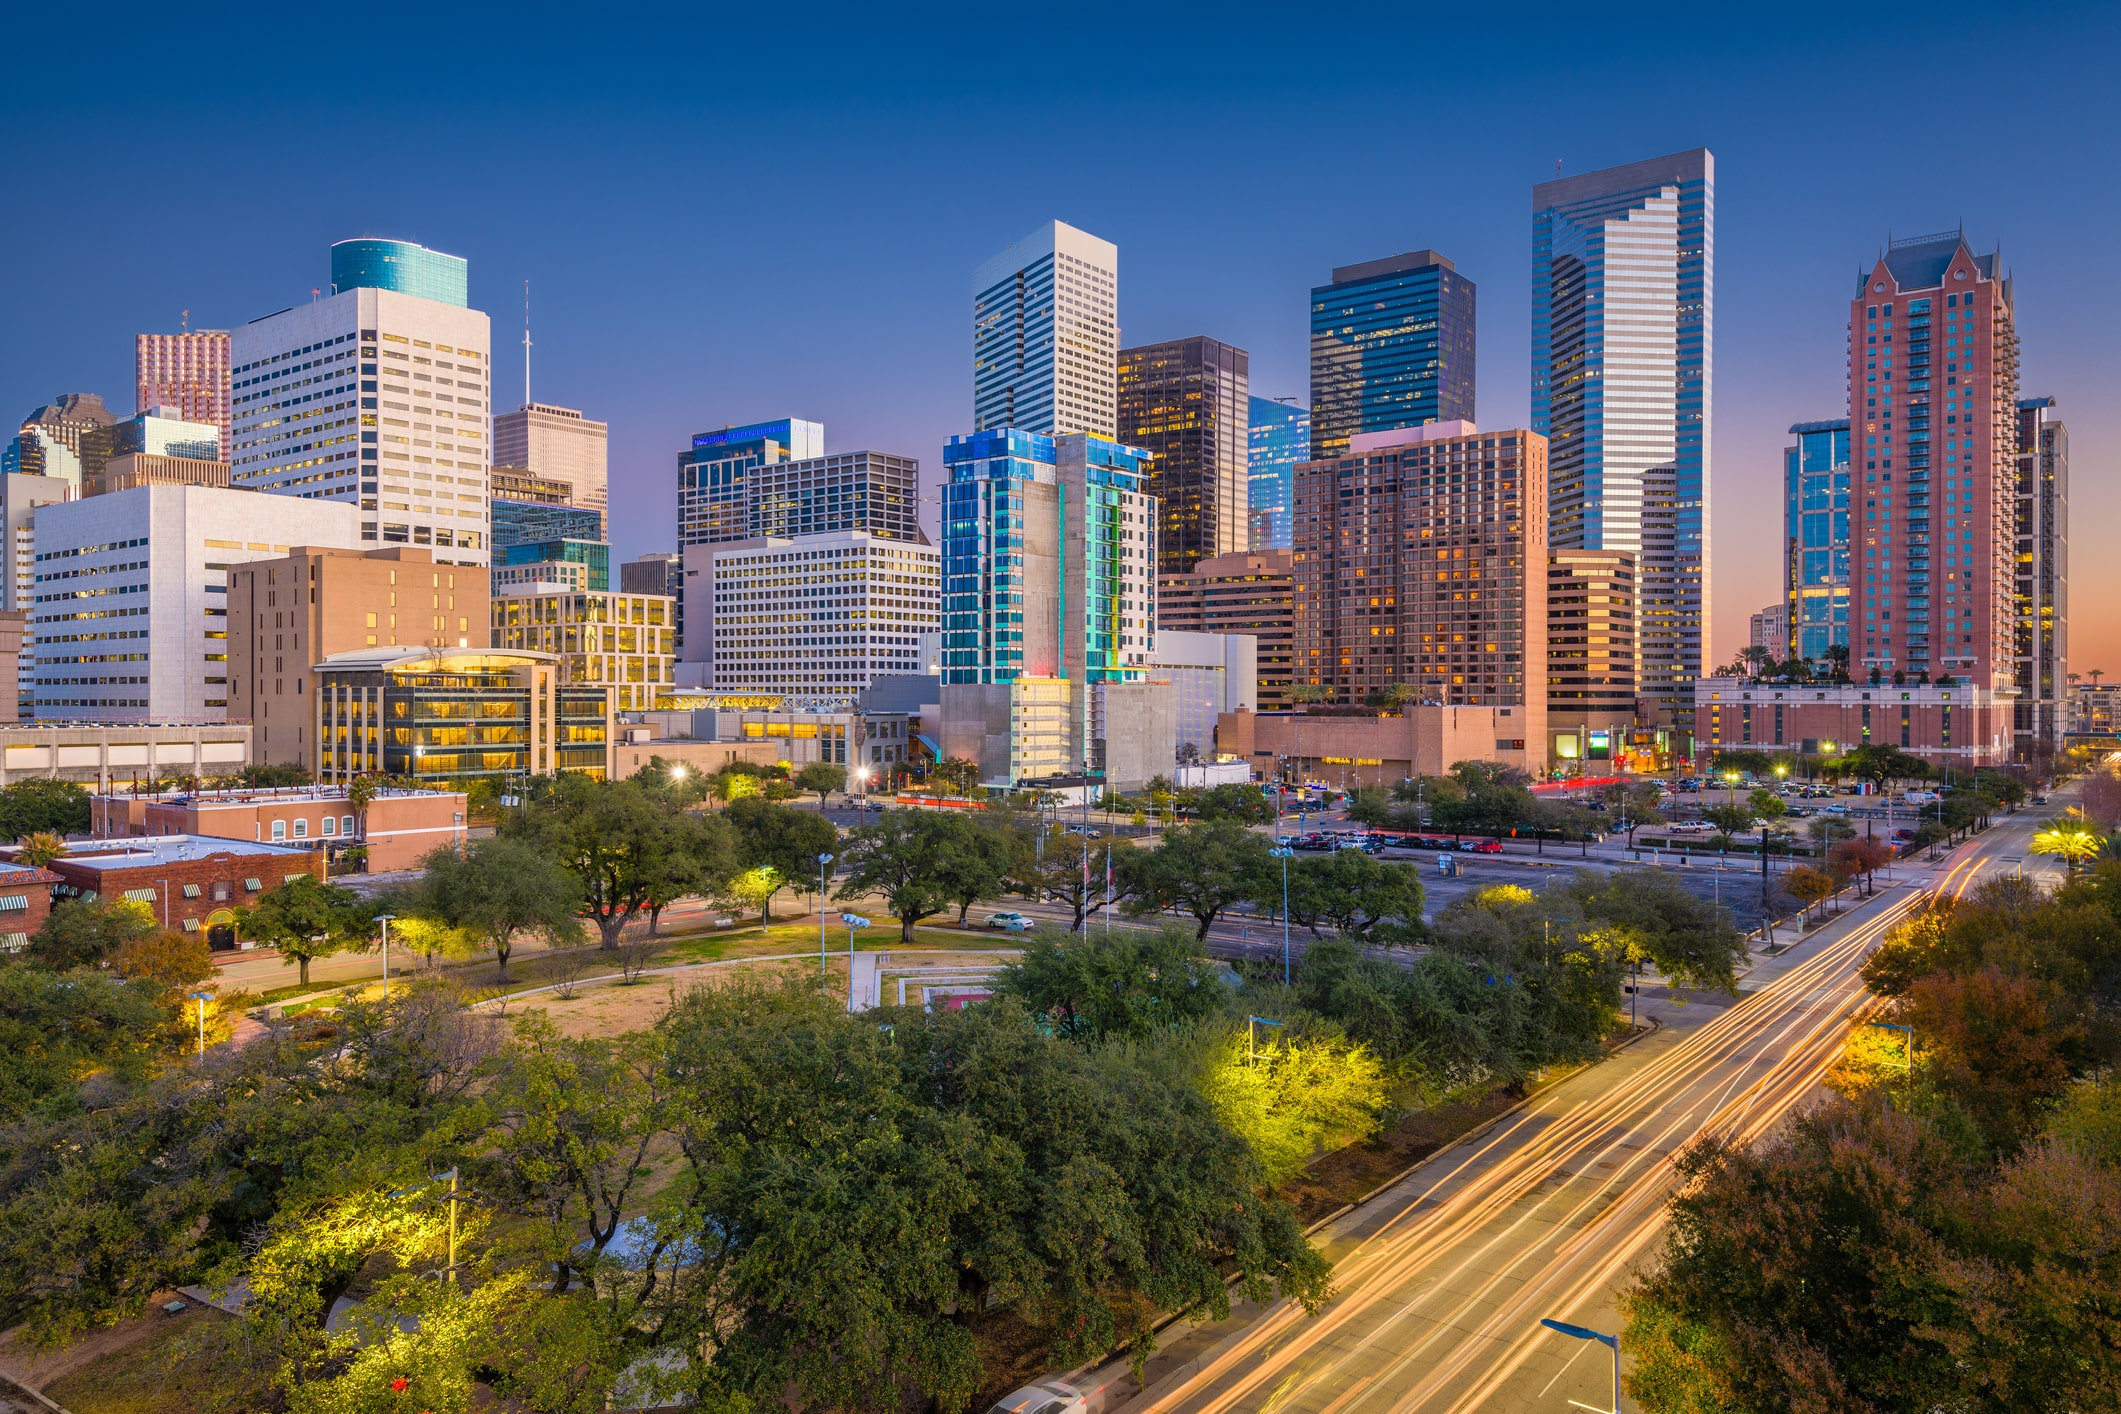 Harris County, TX Selects Everbridge to Power Its Mass Notification System hero image